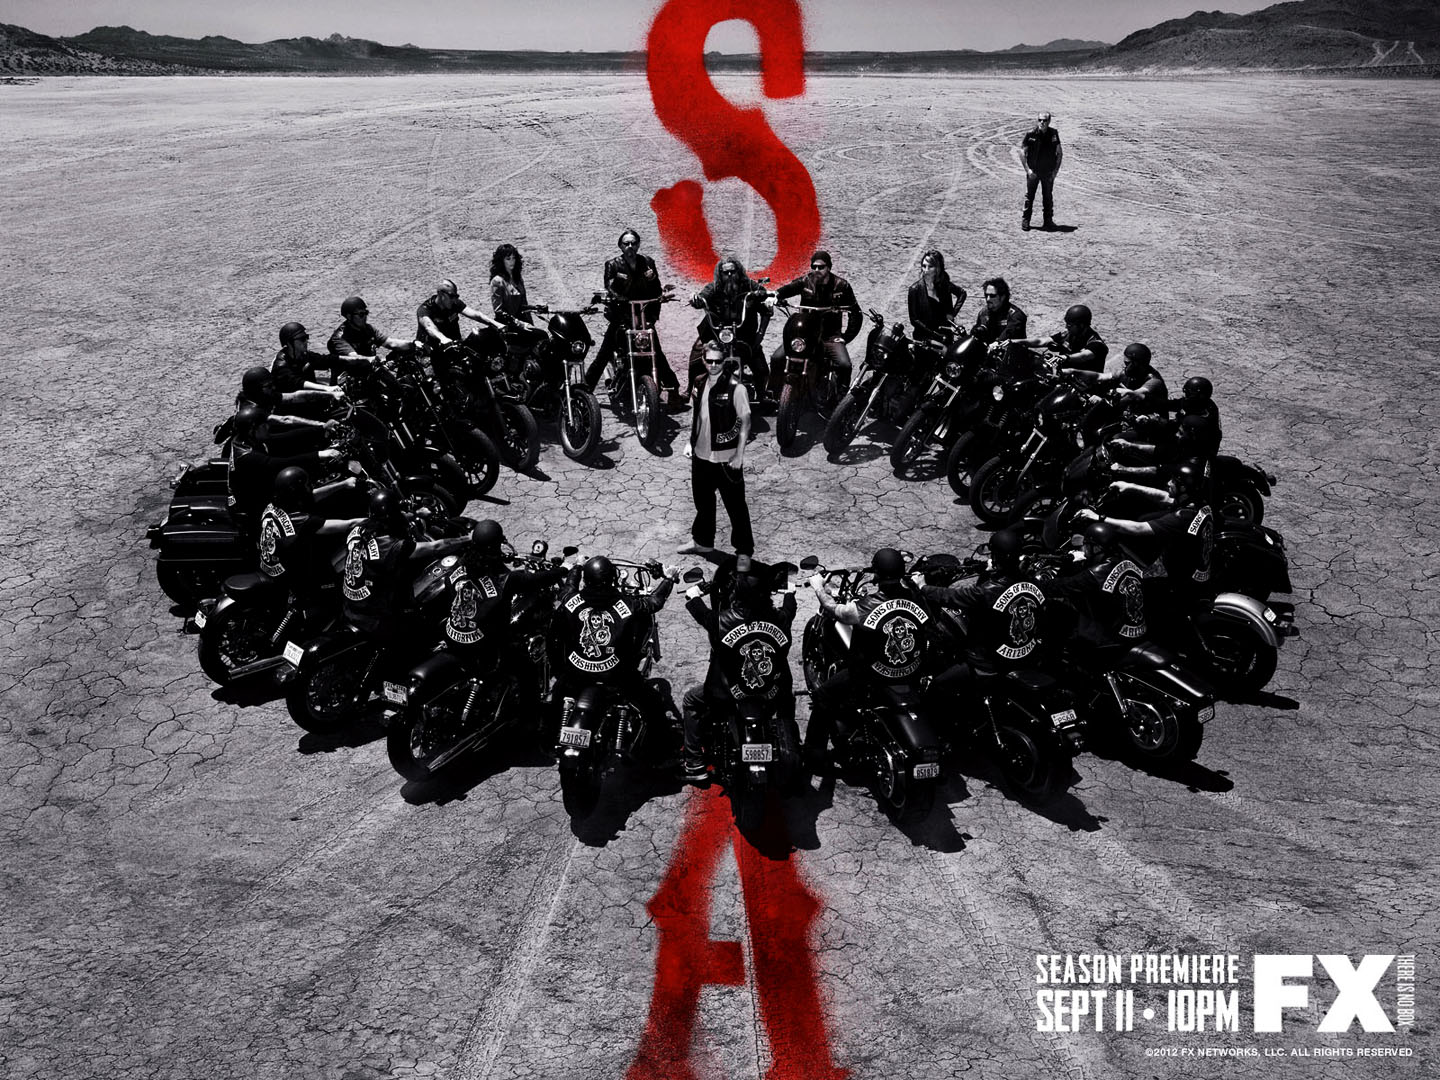 Sons Of Anarchy Hd Logos Wallpapers Download Free Wallpapers In Hd